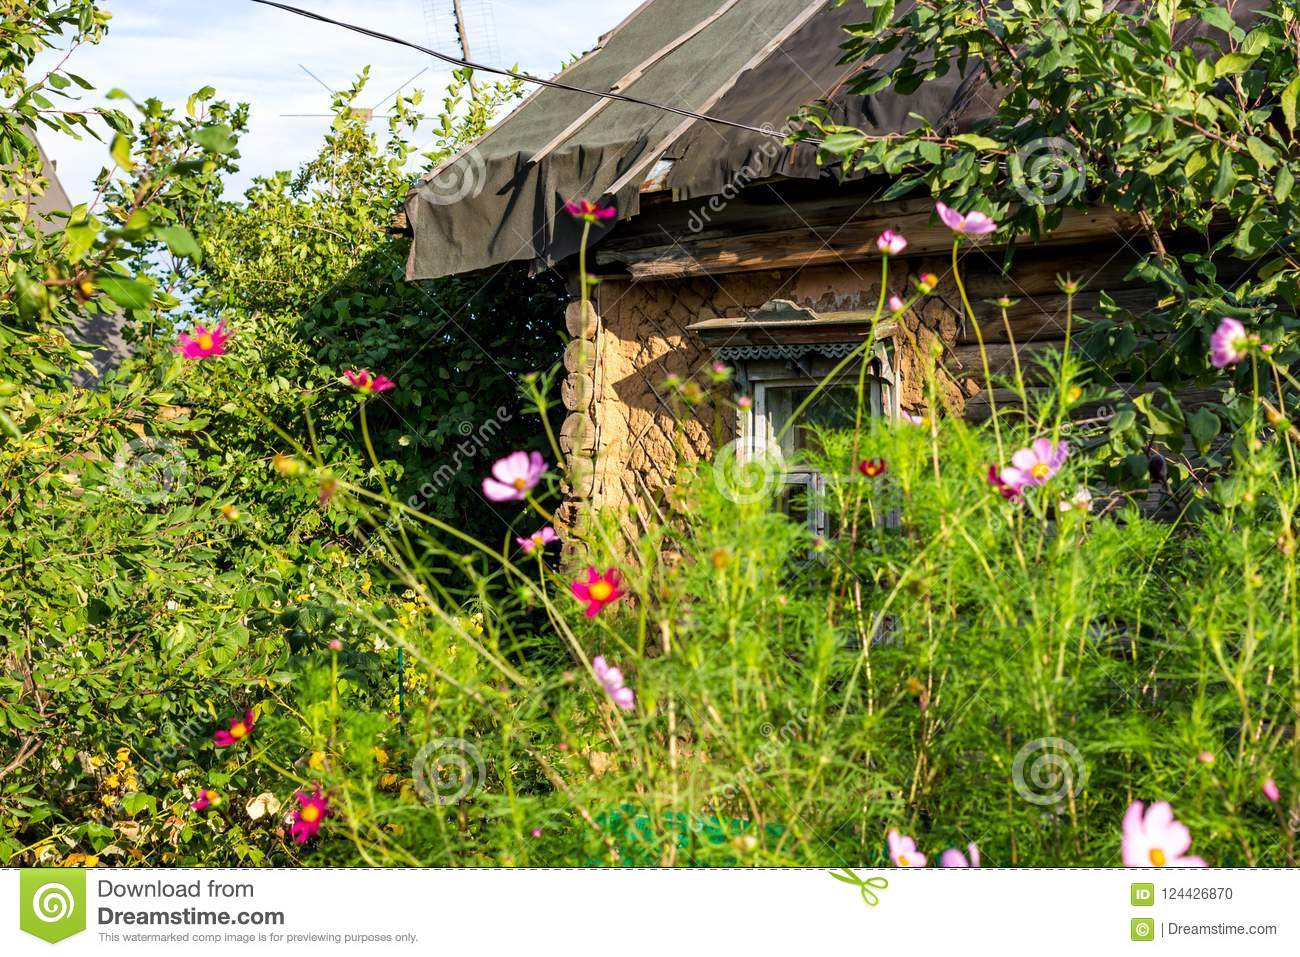 Garden Flowers On The Background Of A Very Old Village House